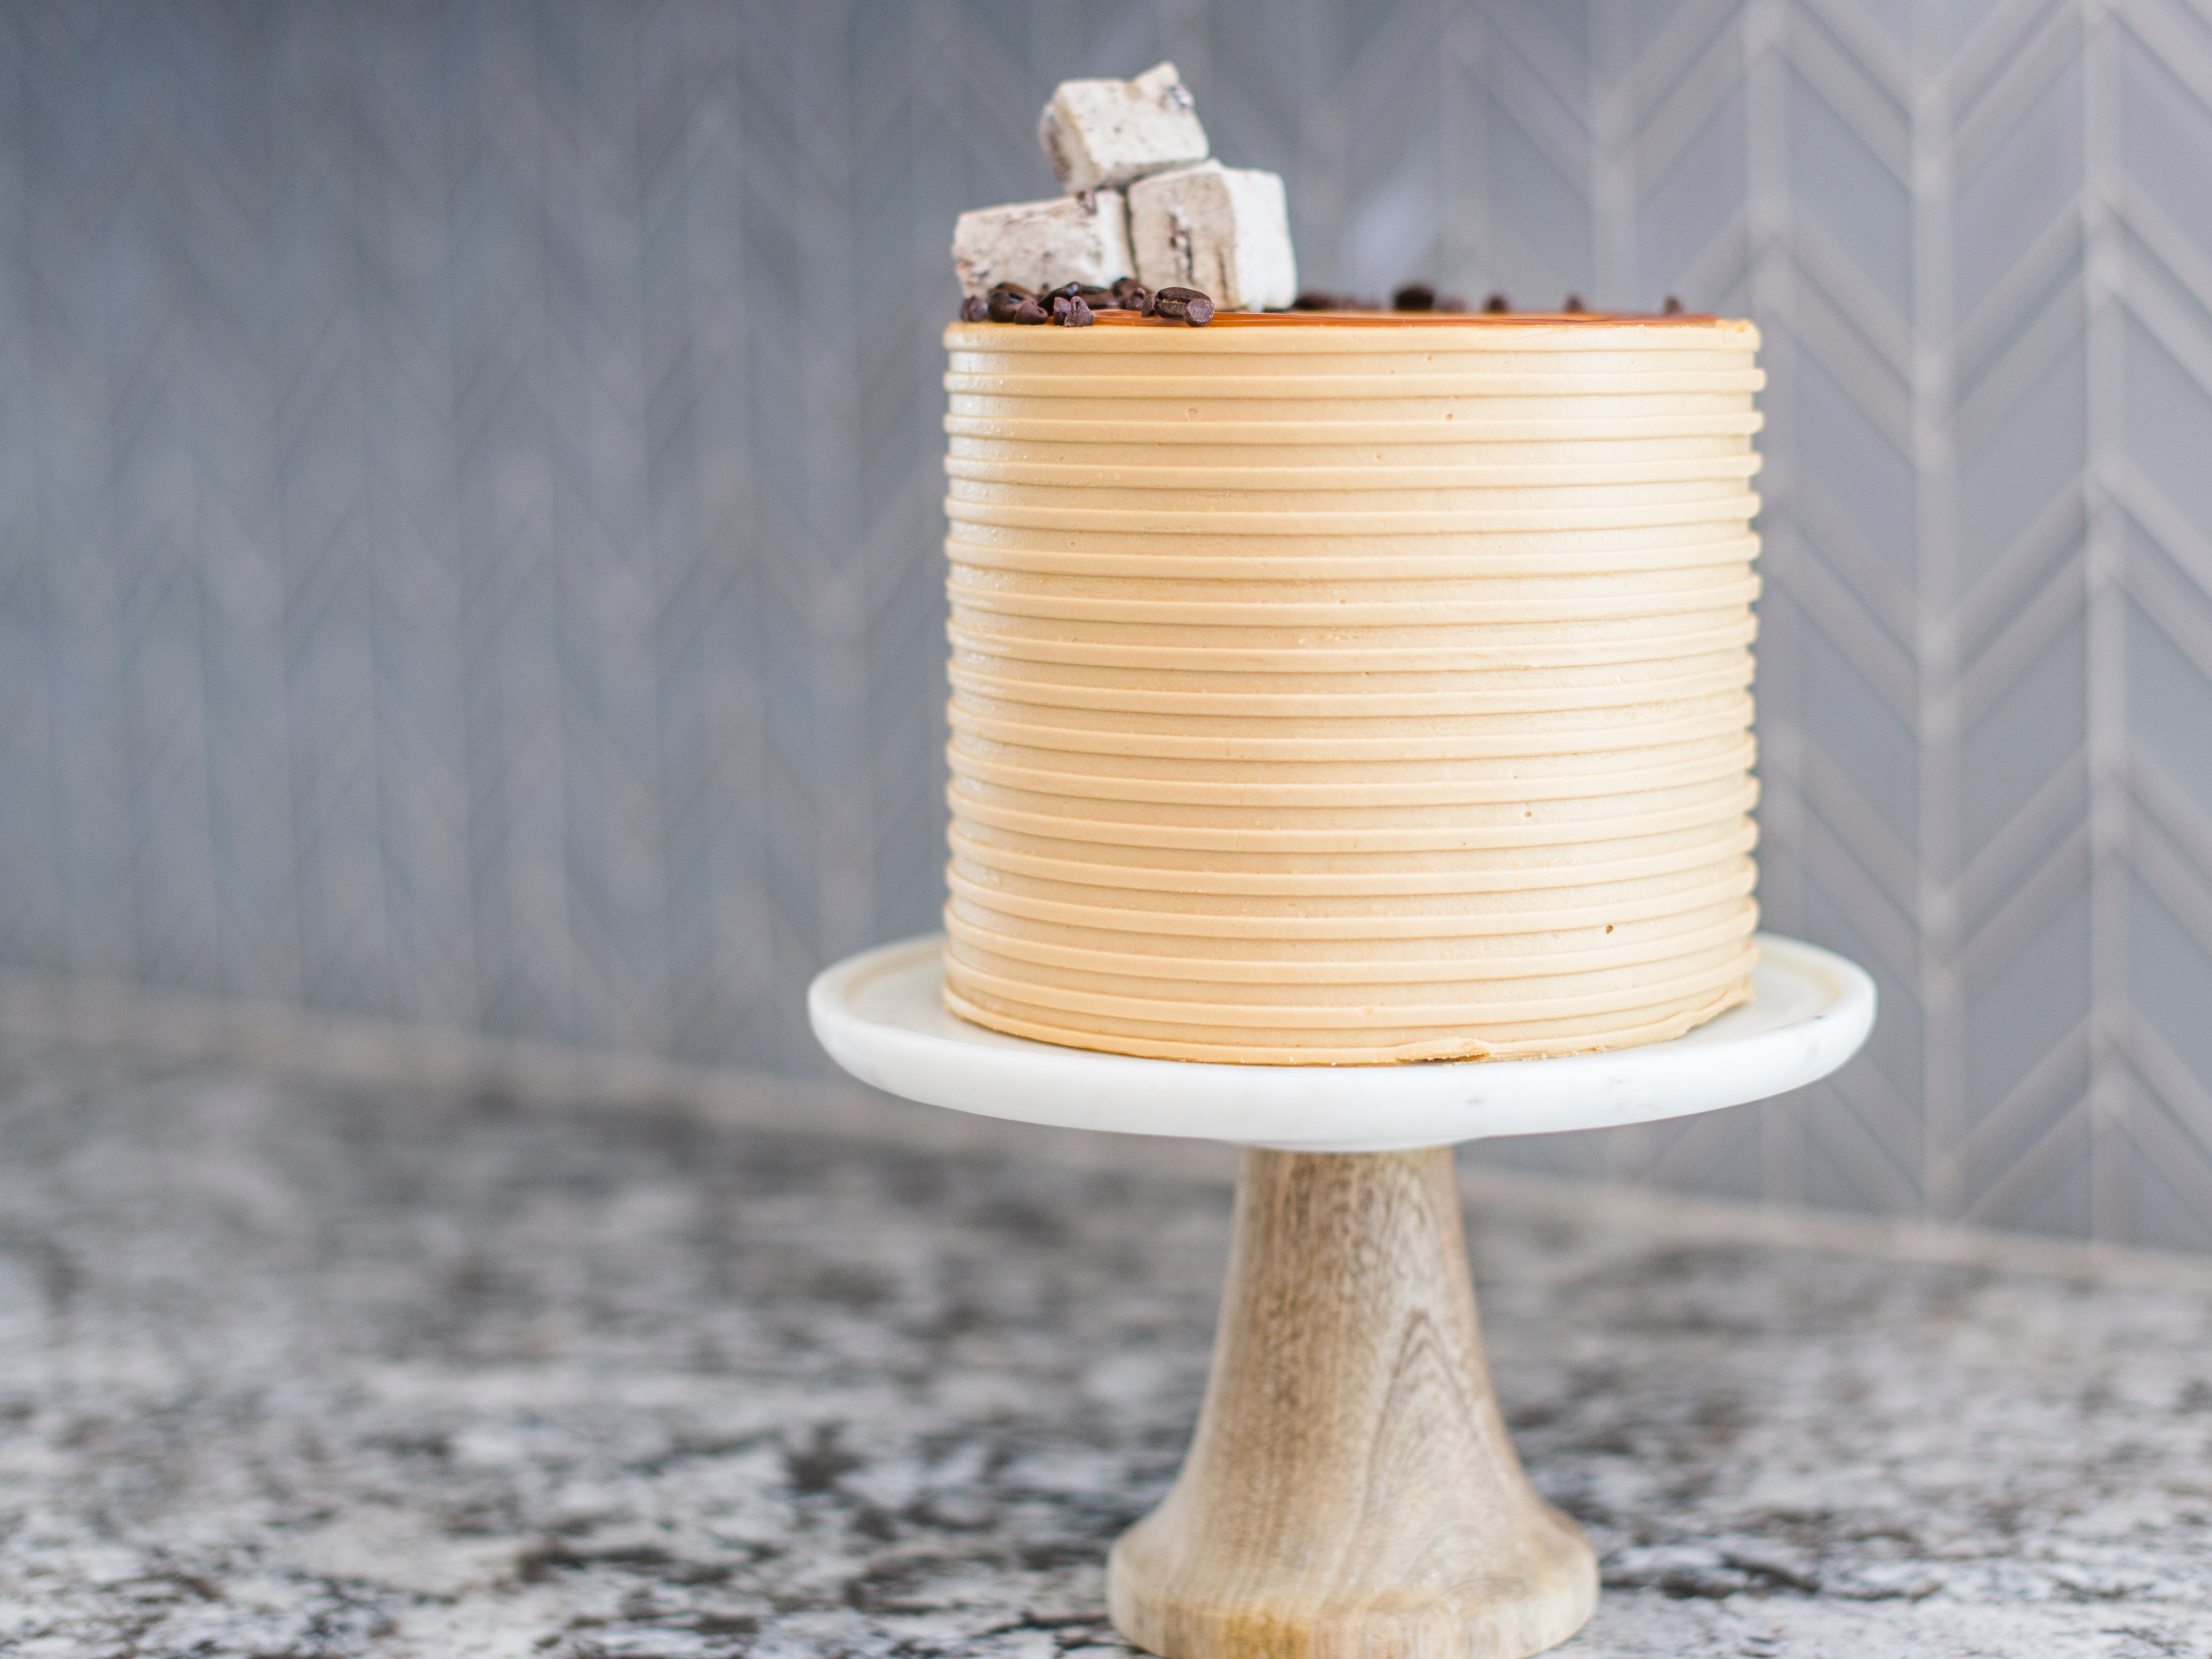 Calling all coffee lovers! This Mocha Chip Cake is for you!